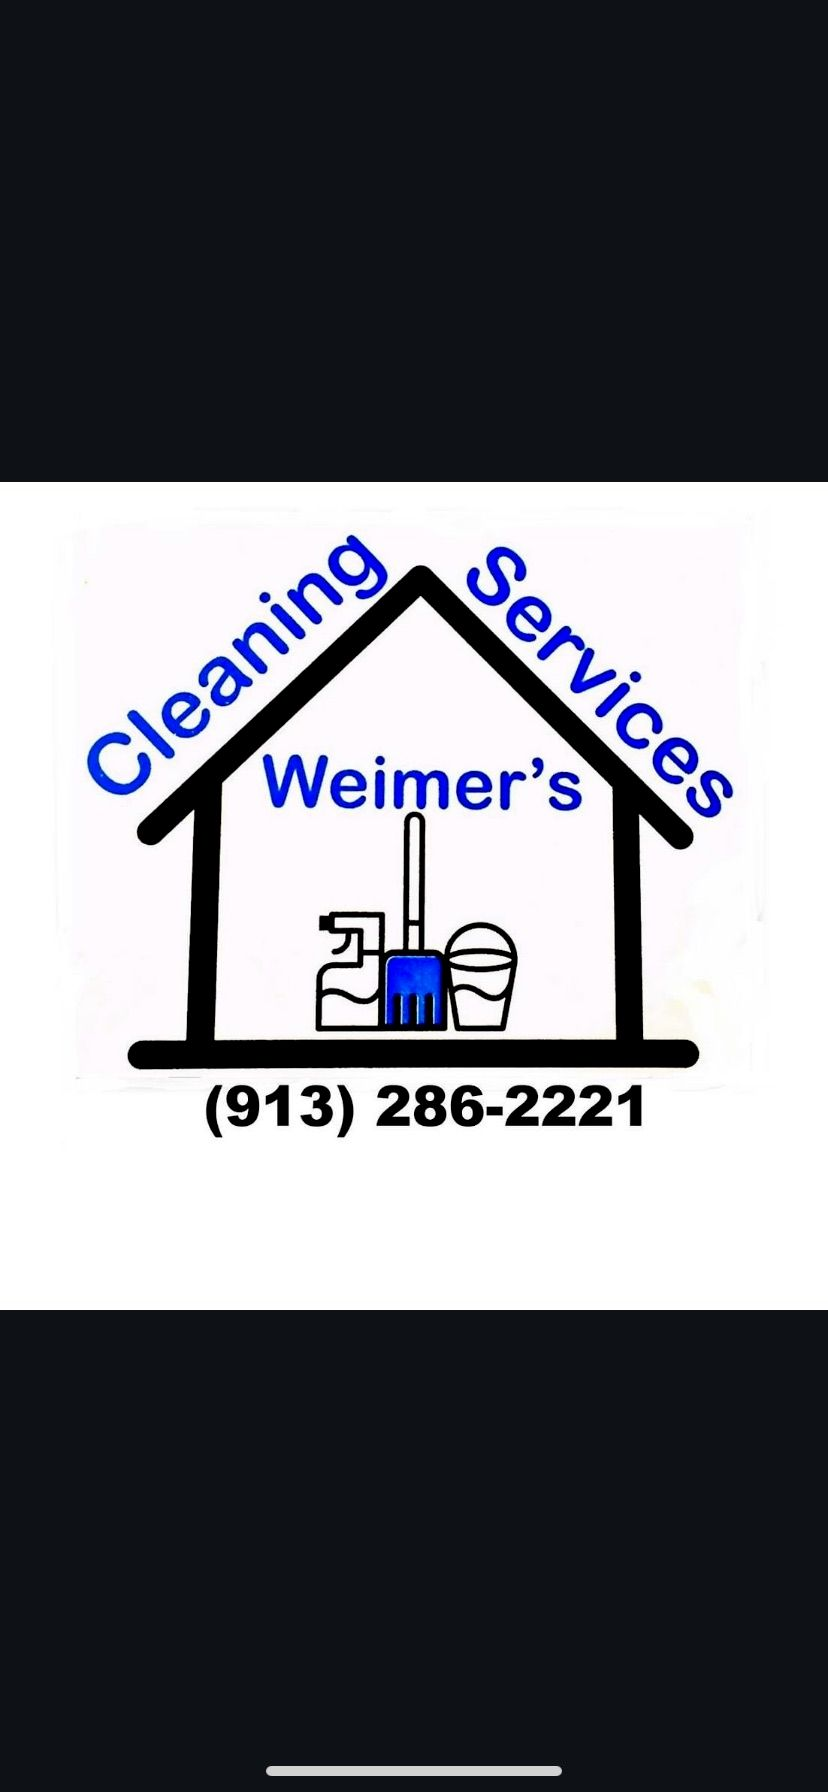 Weimer's Cleaning Services